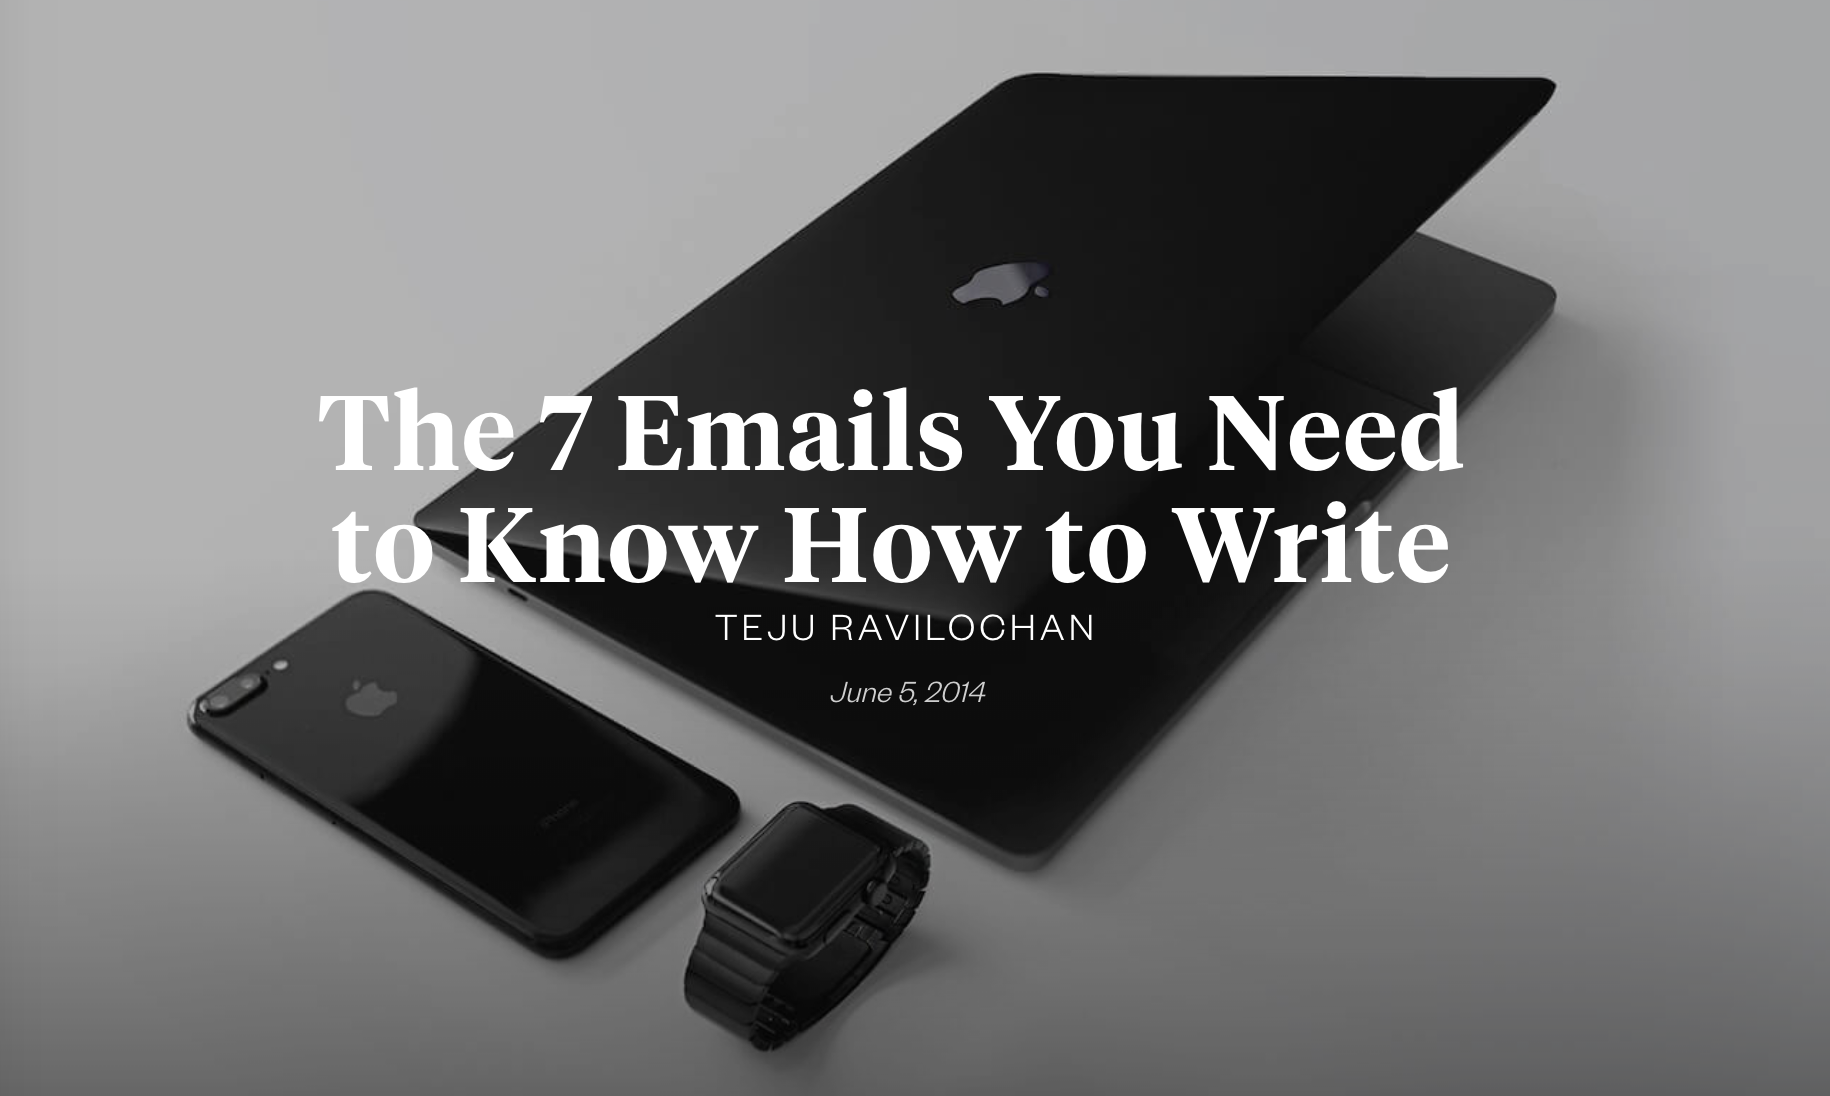 Expand Your Mind email writing